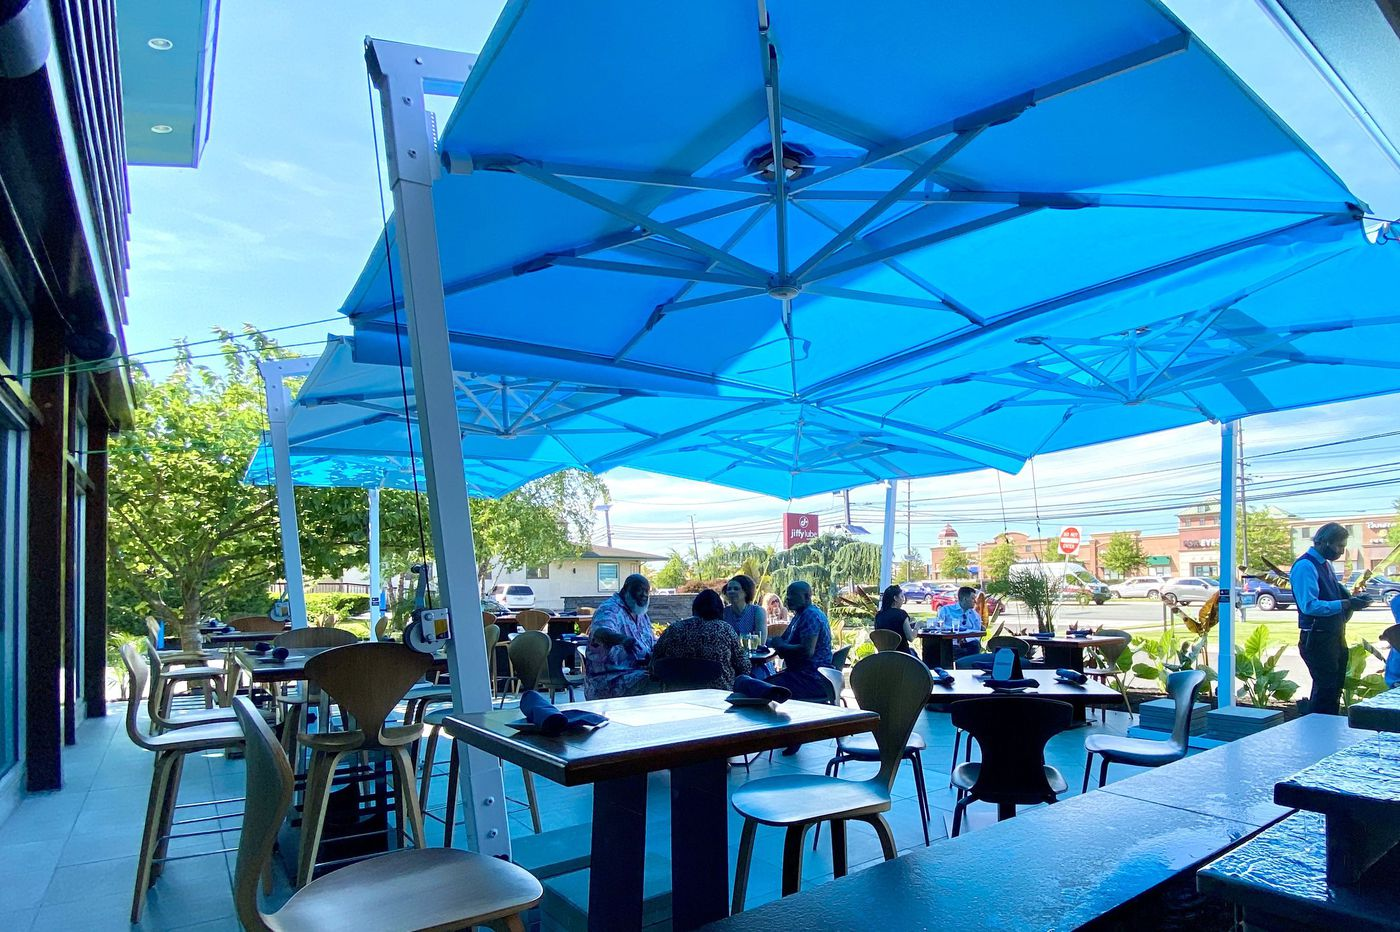 Our first taste of outdoor dining | Let's Eat